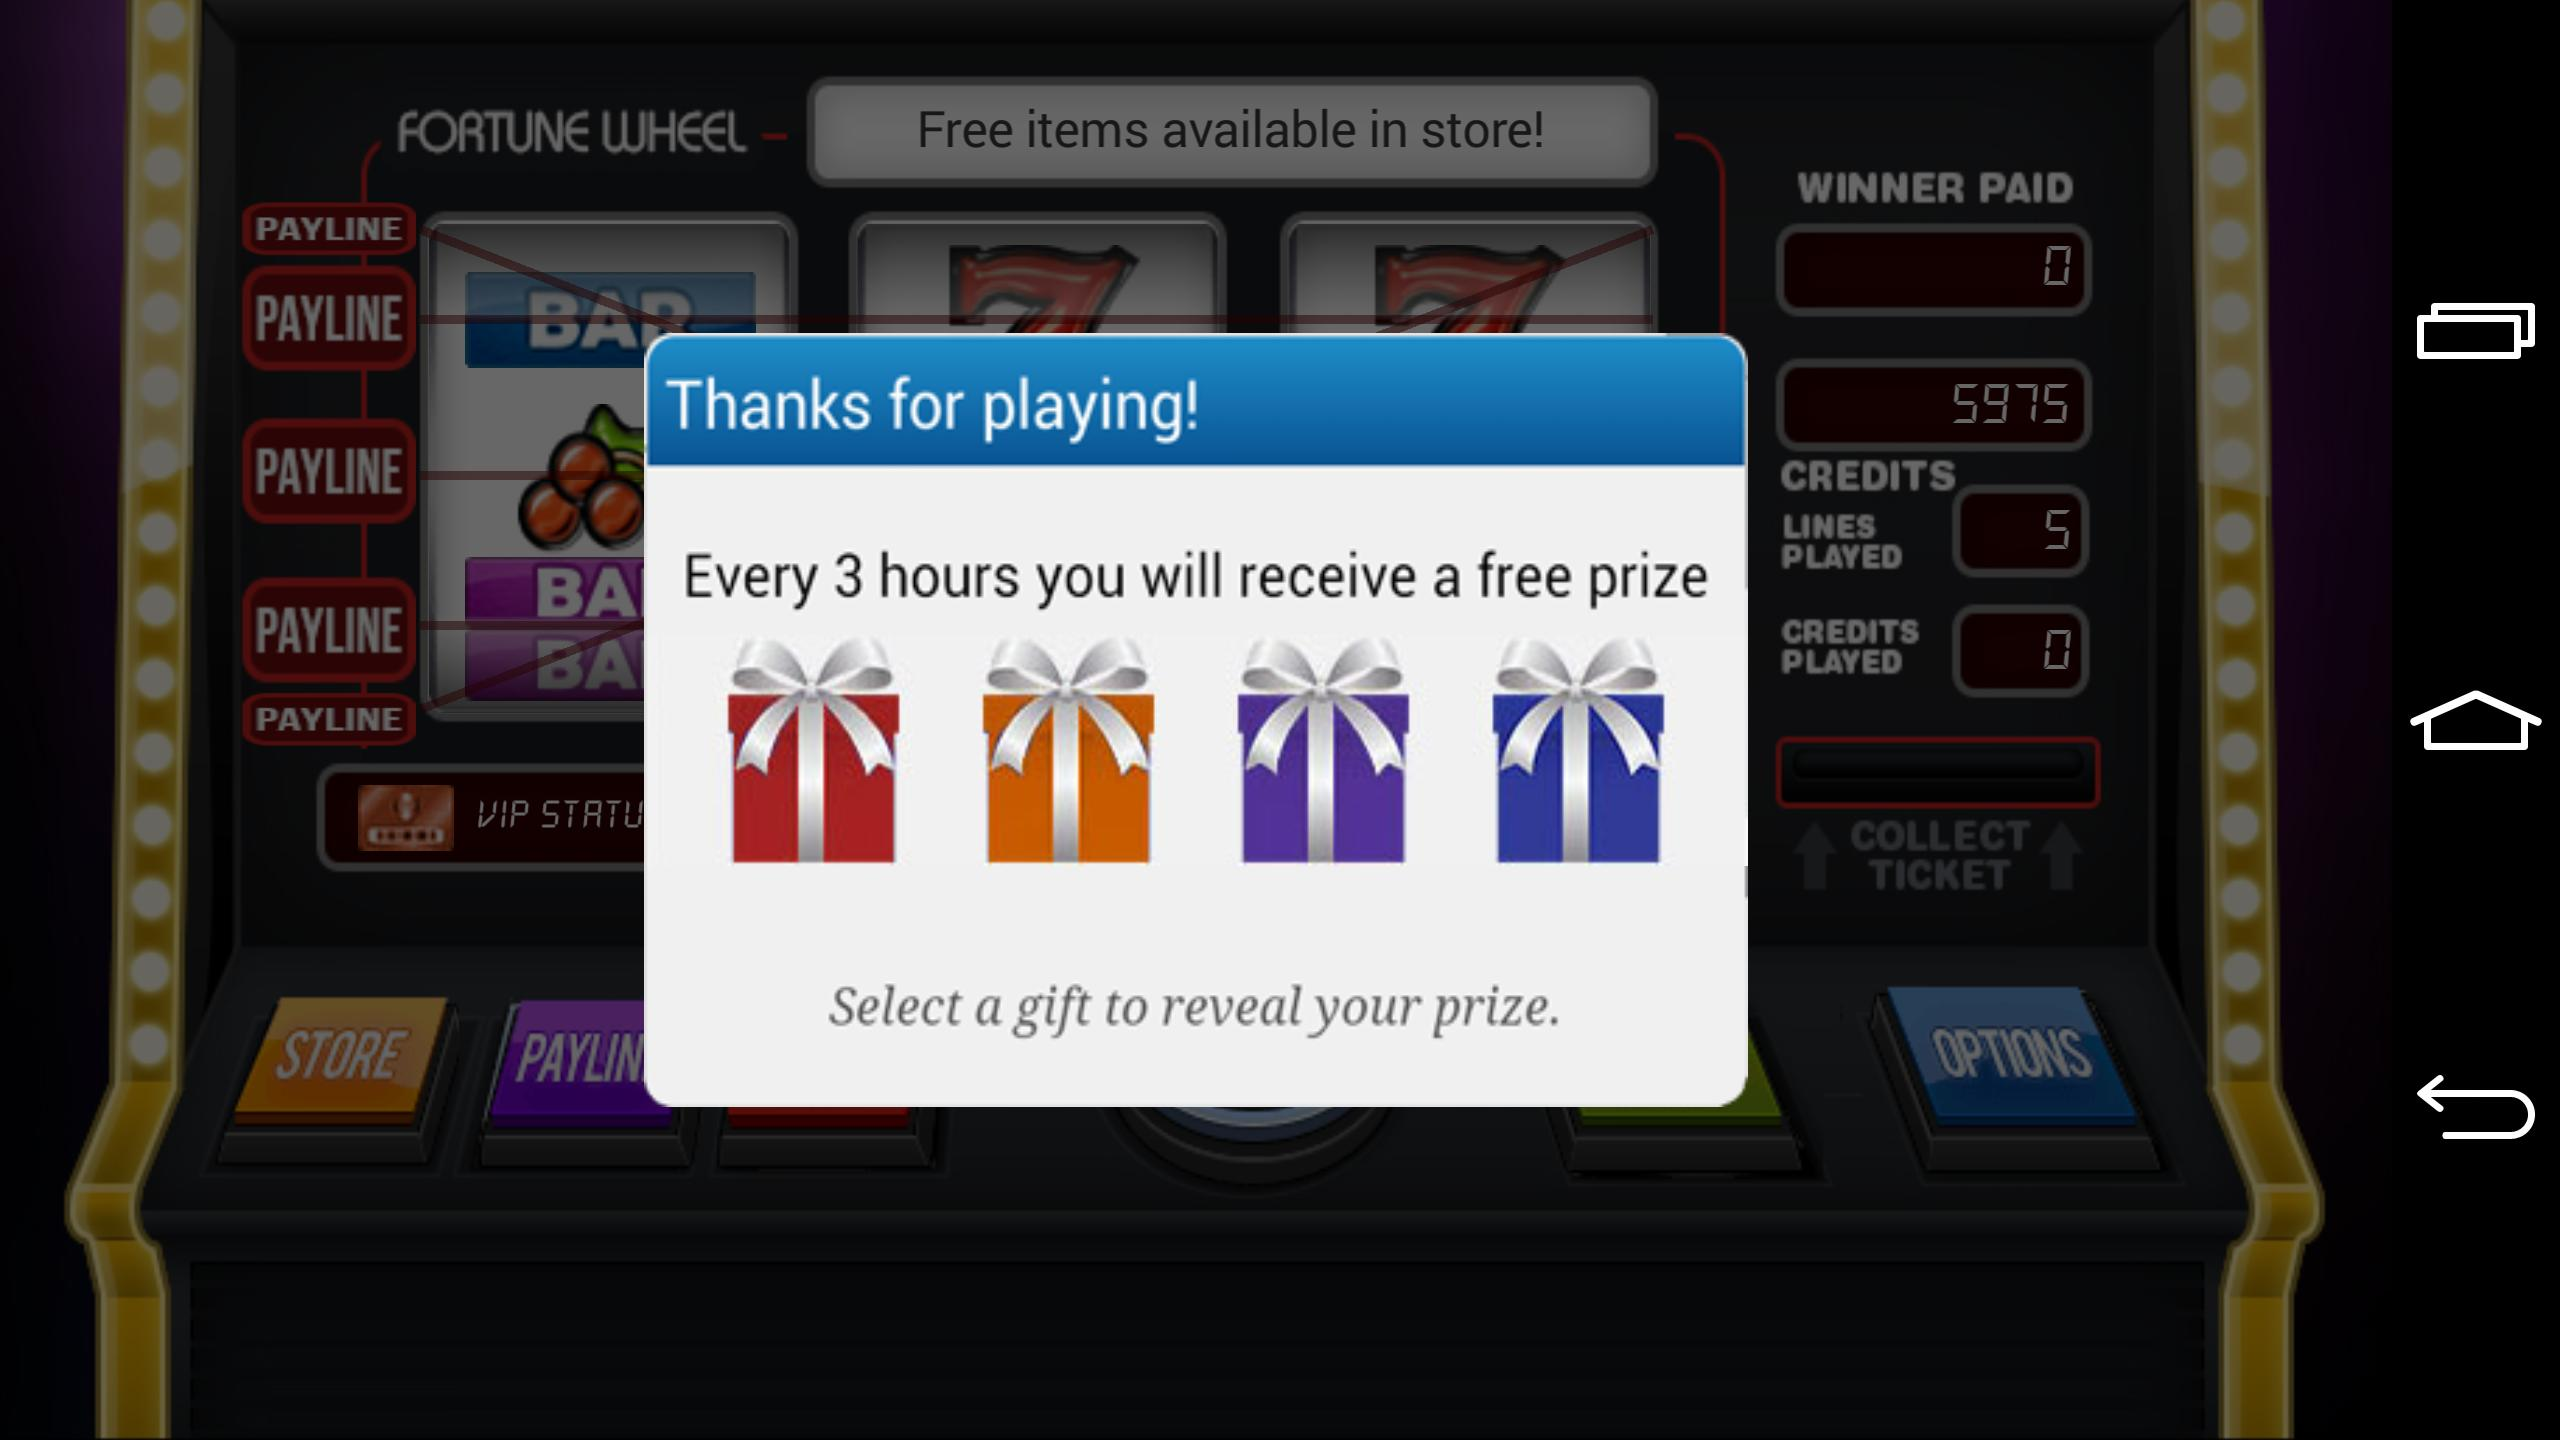 Fortune Wheel Slots 2 For Android Apk Download